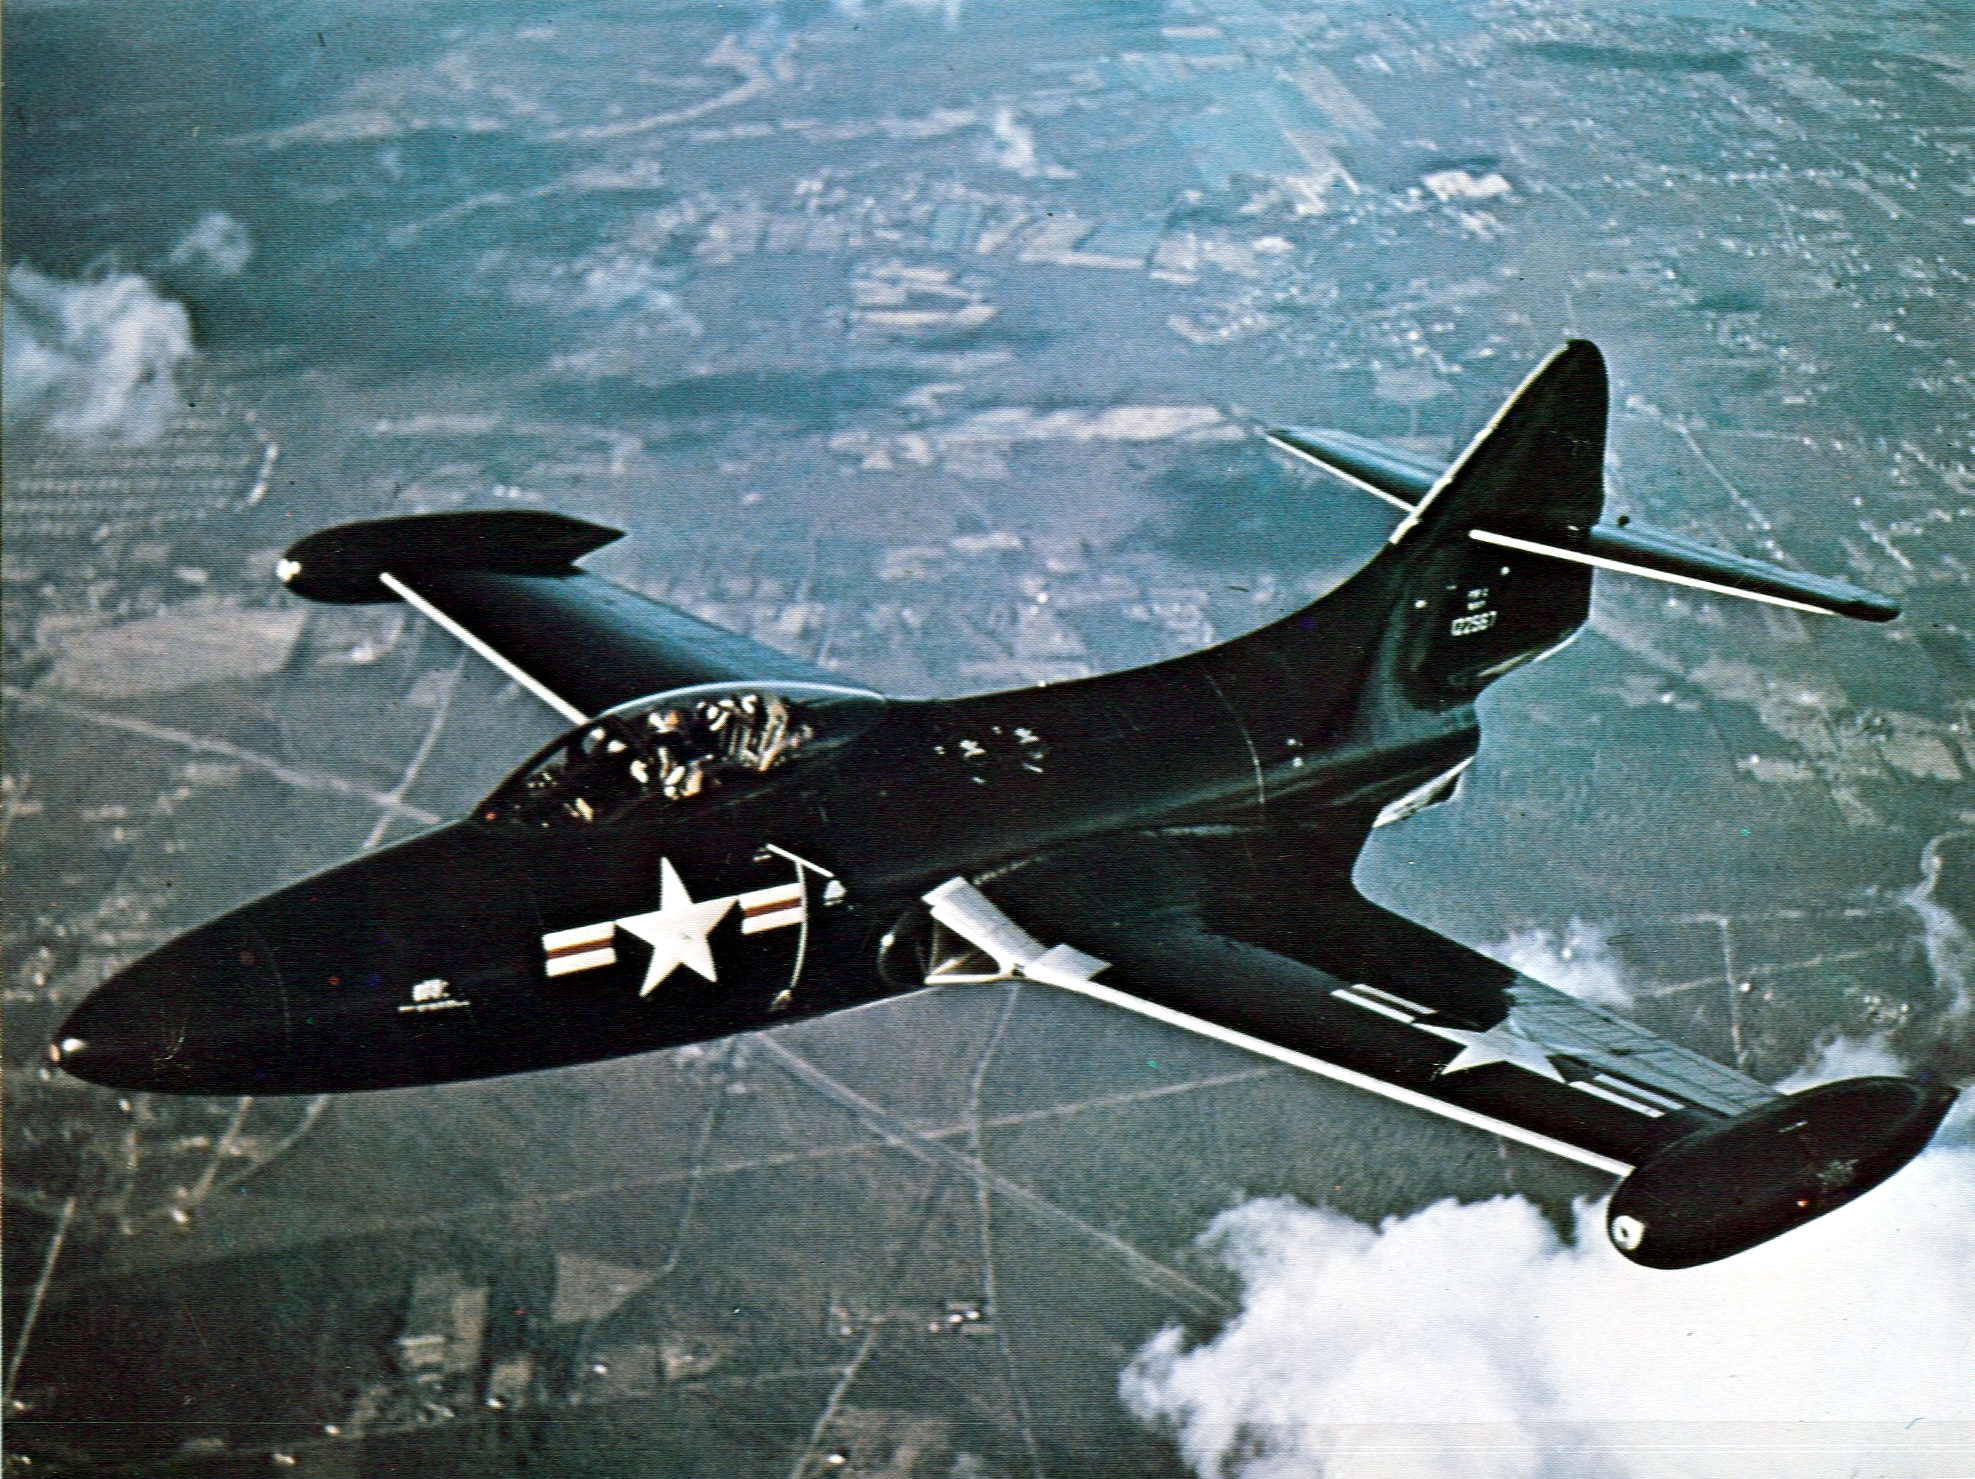 Unhistory' - The Cold War Dogfight That Officially Never Happened